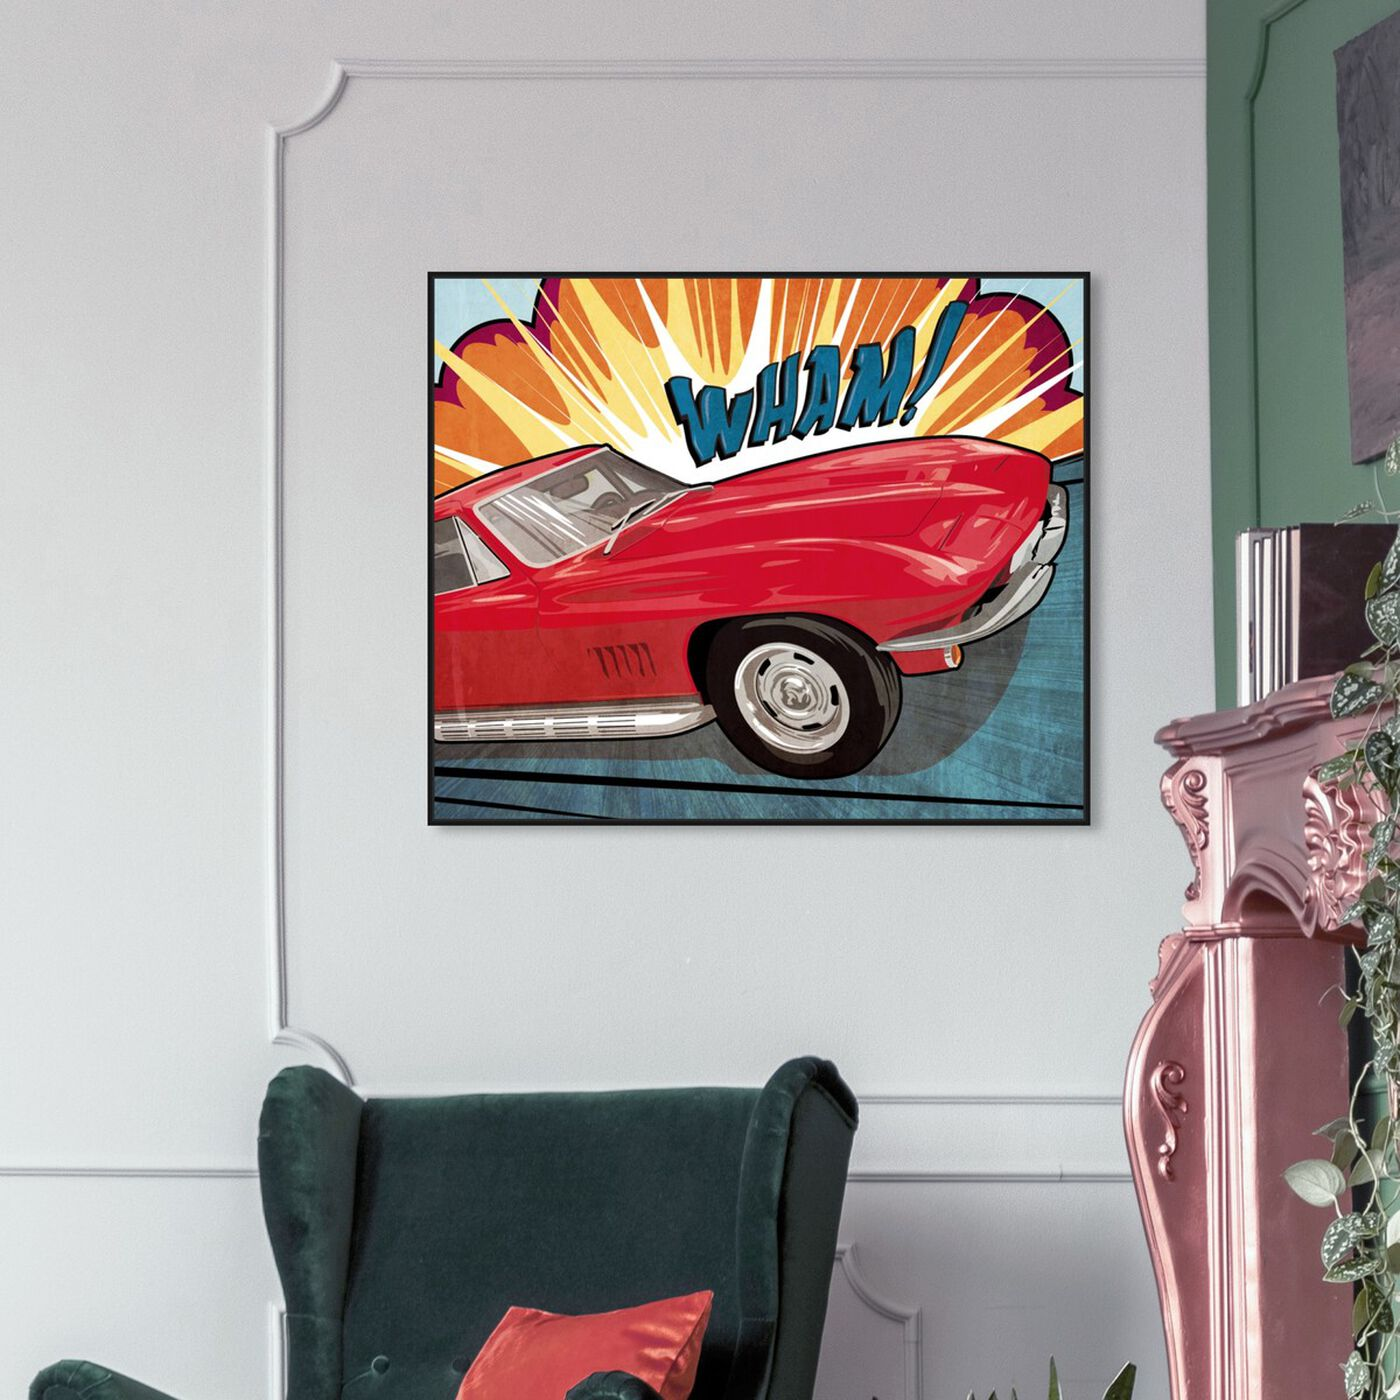 Hanging view of Wham featuring advertising and comics art.